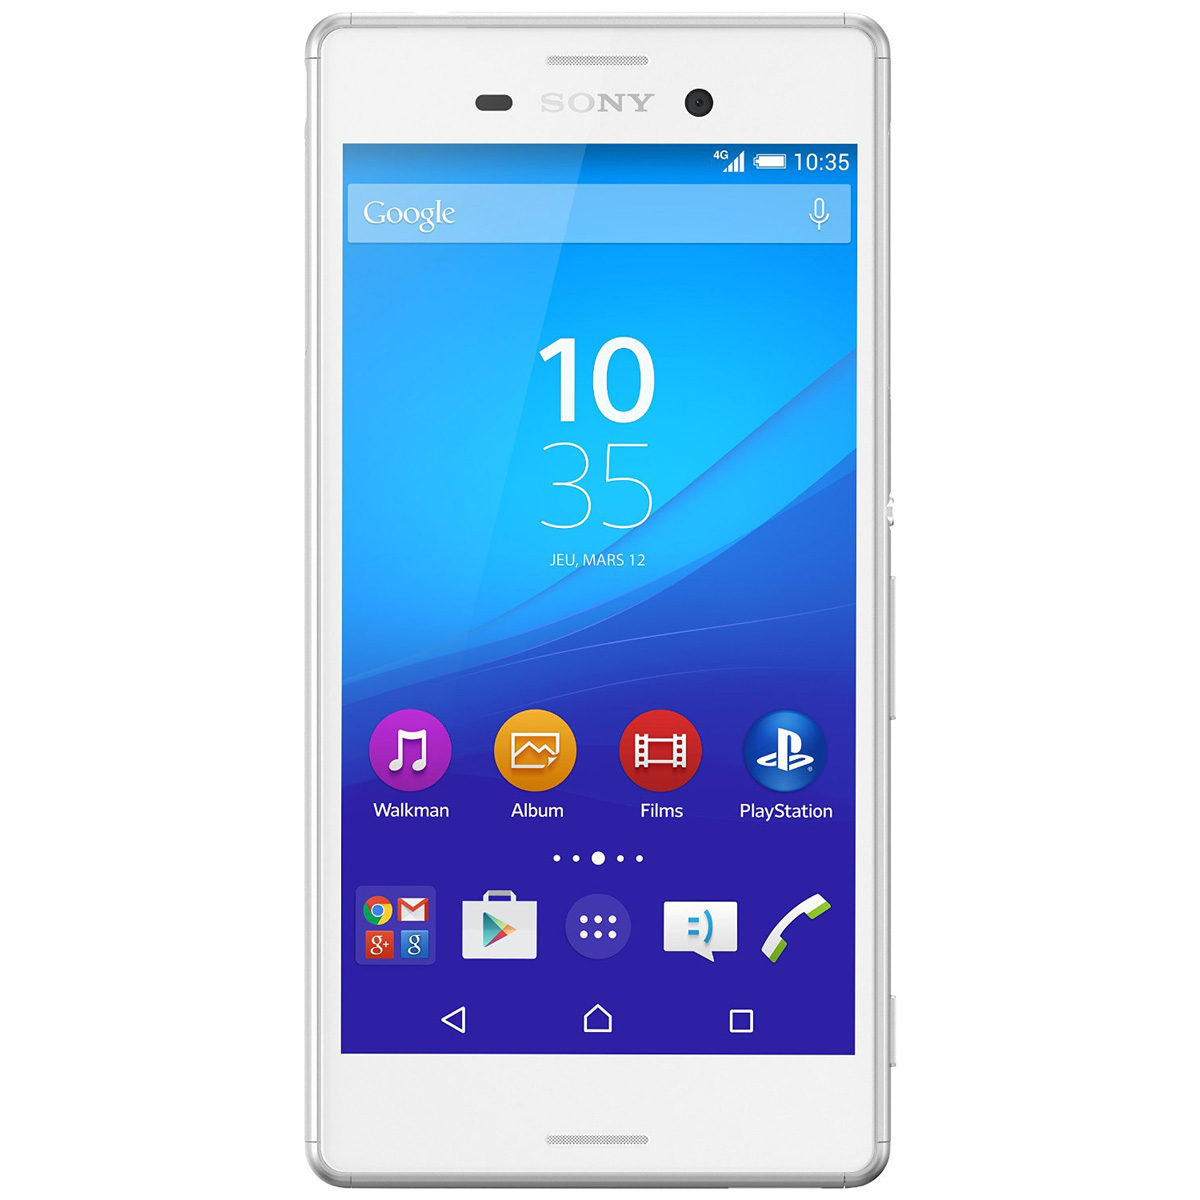 sony xperia m4 aqua dual sim blanc mobile smartphone. Black Bedroom Furniture Sets. Home Design Ideas